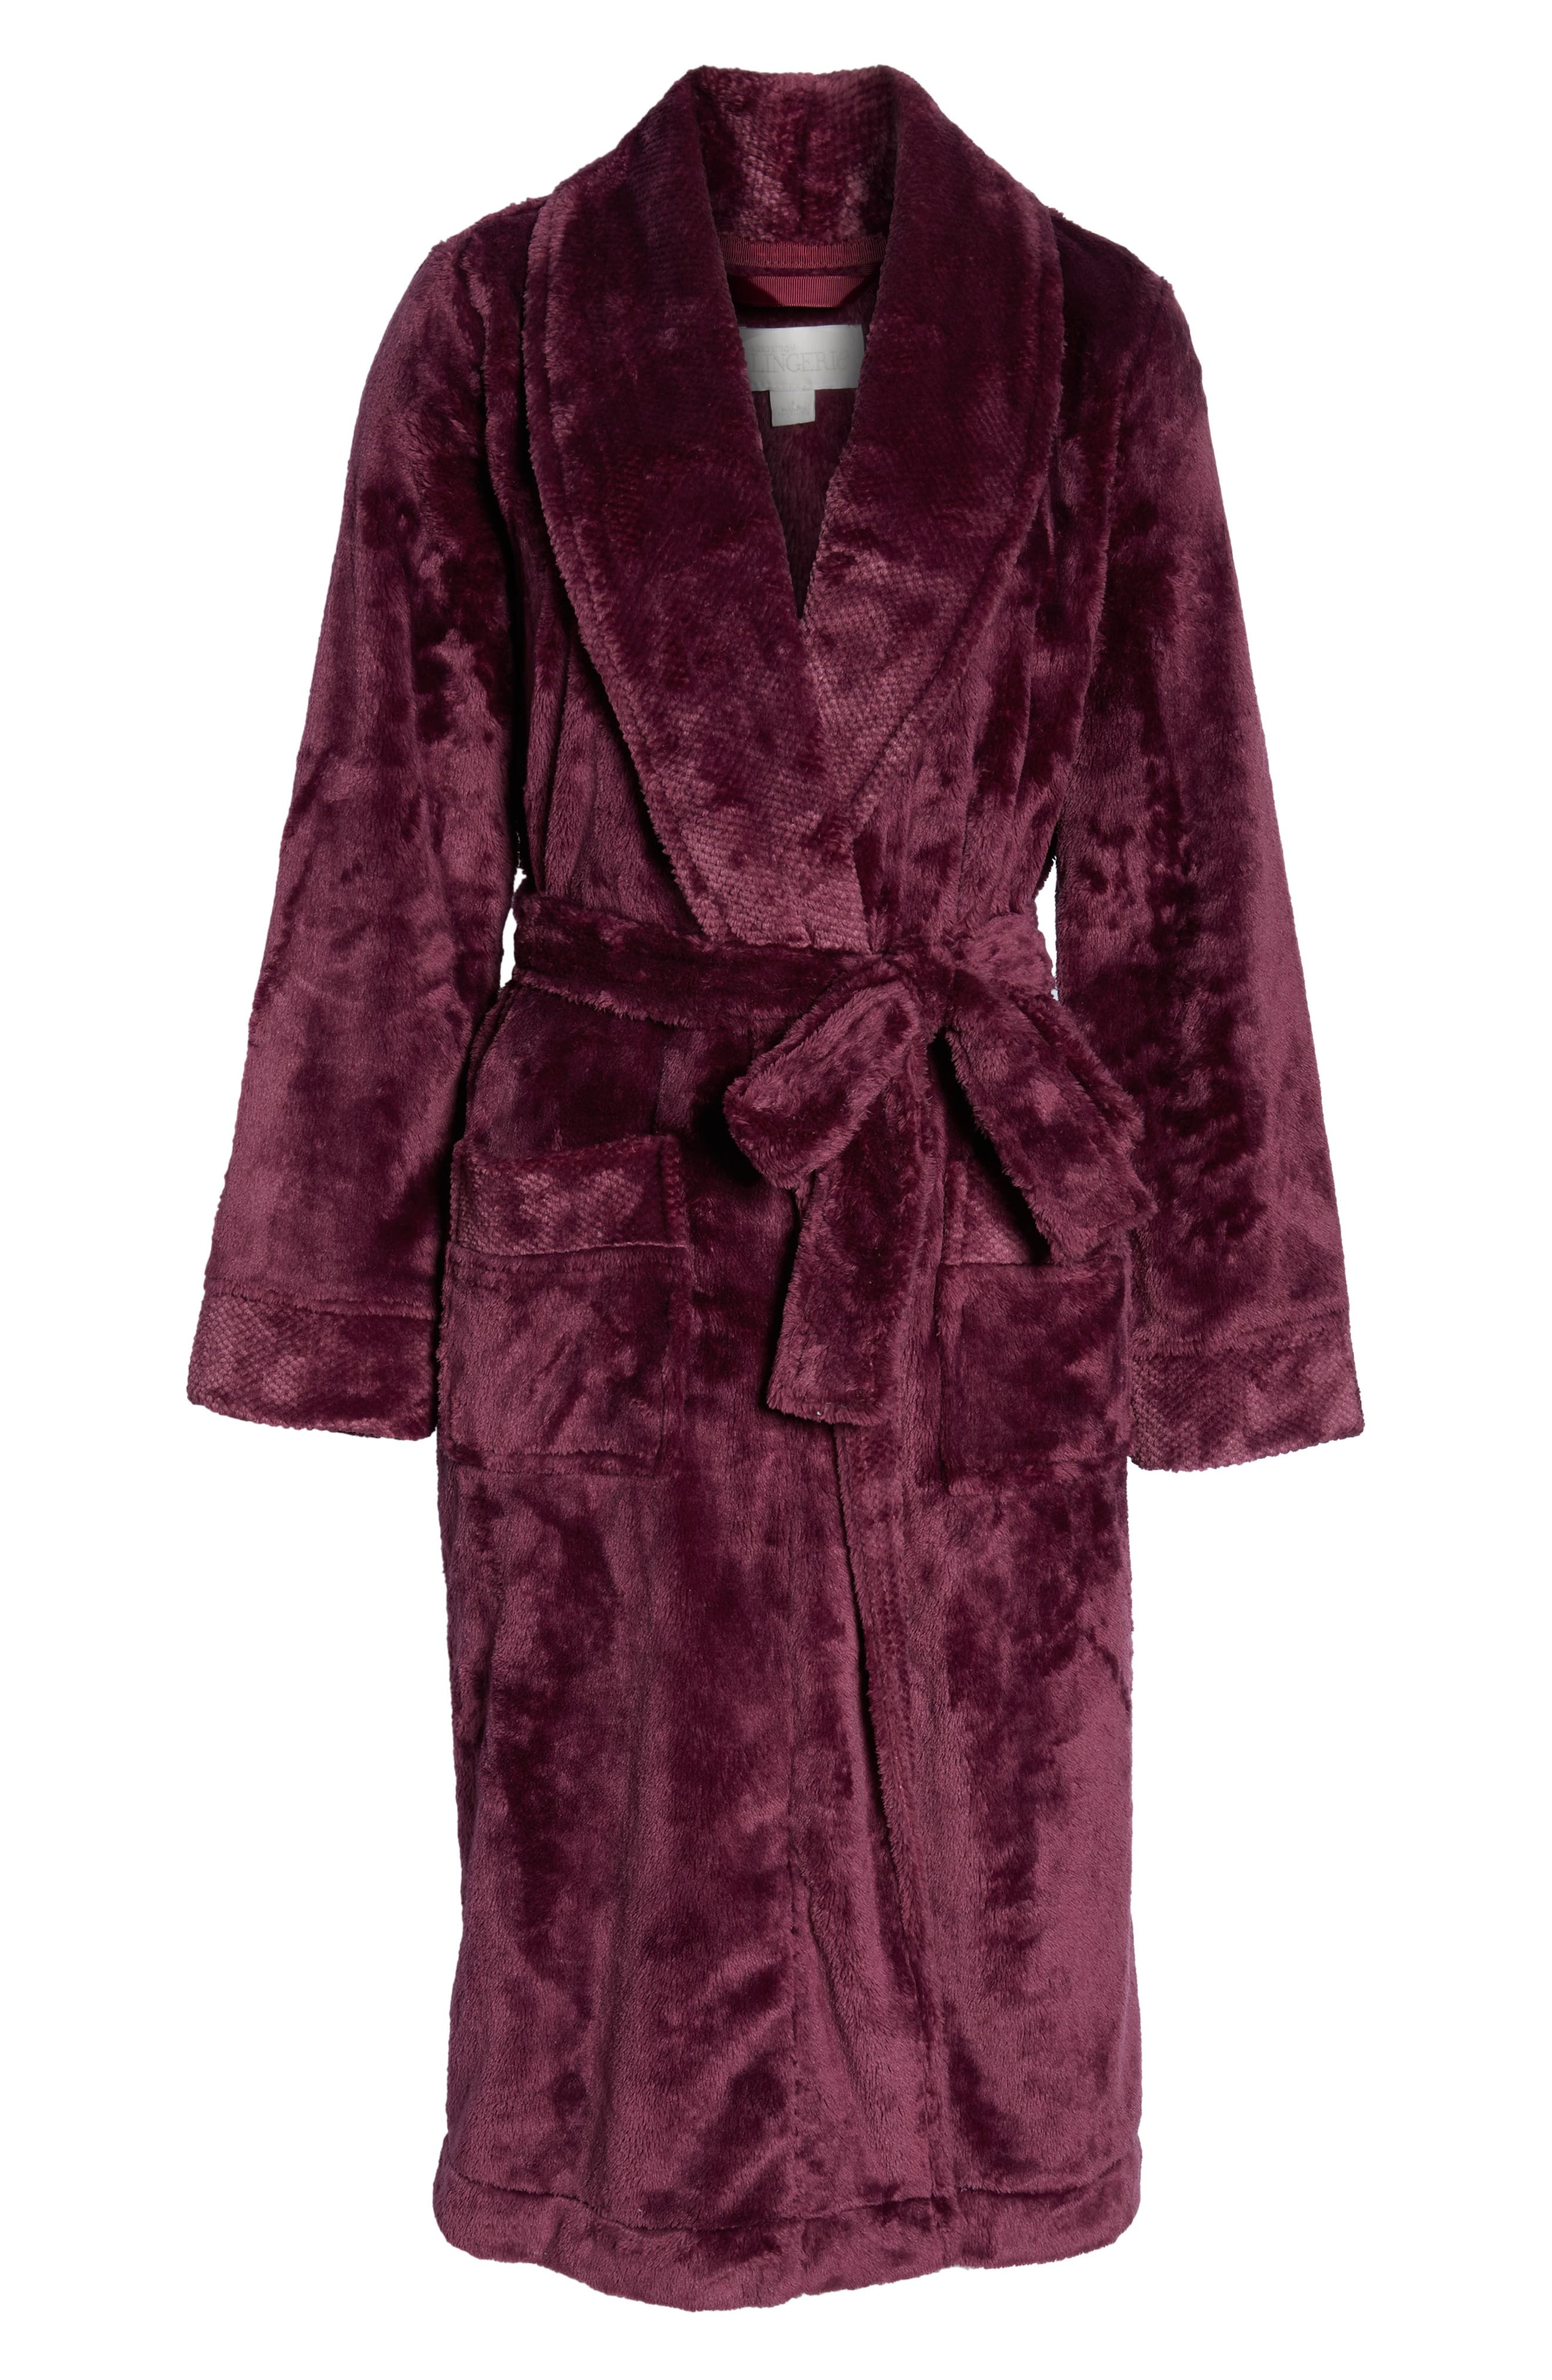 Nordstrom So Soft Plush Robe,                             Alternate thumbnail 6, color,                             PURPLE CRUSH